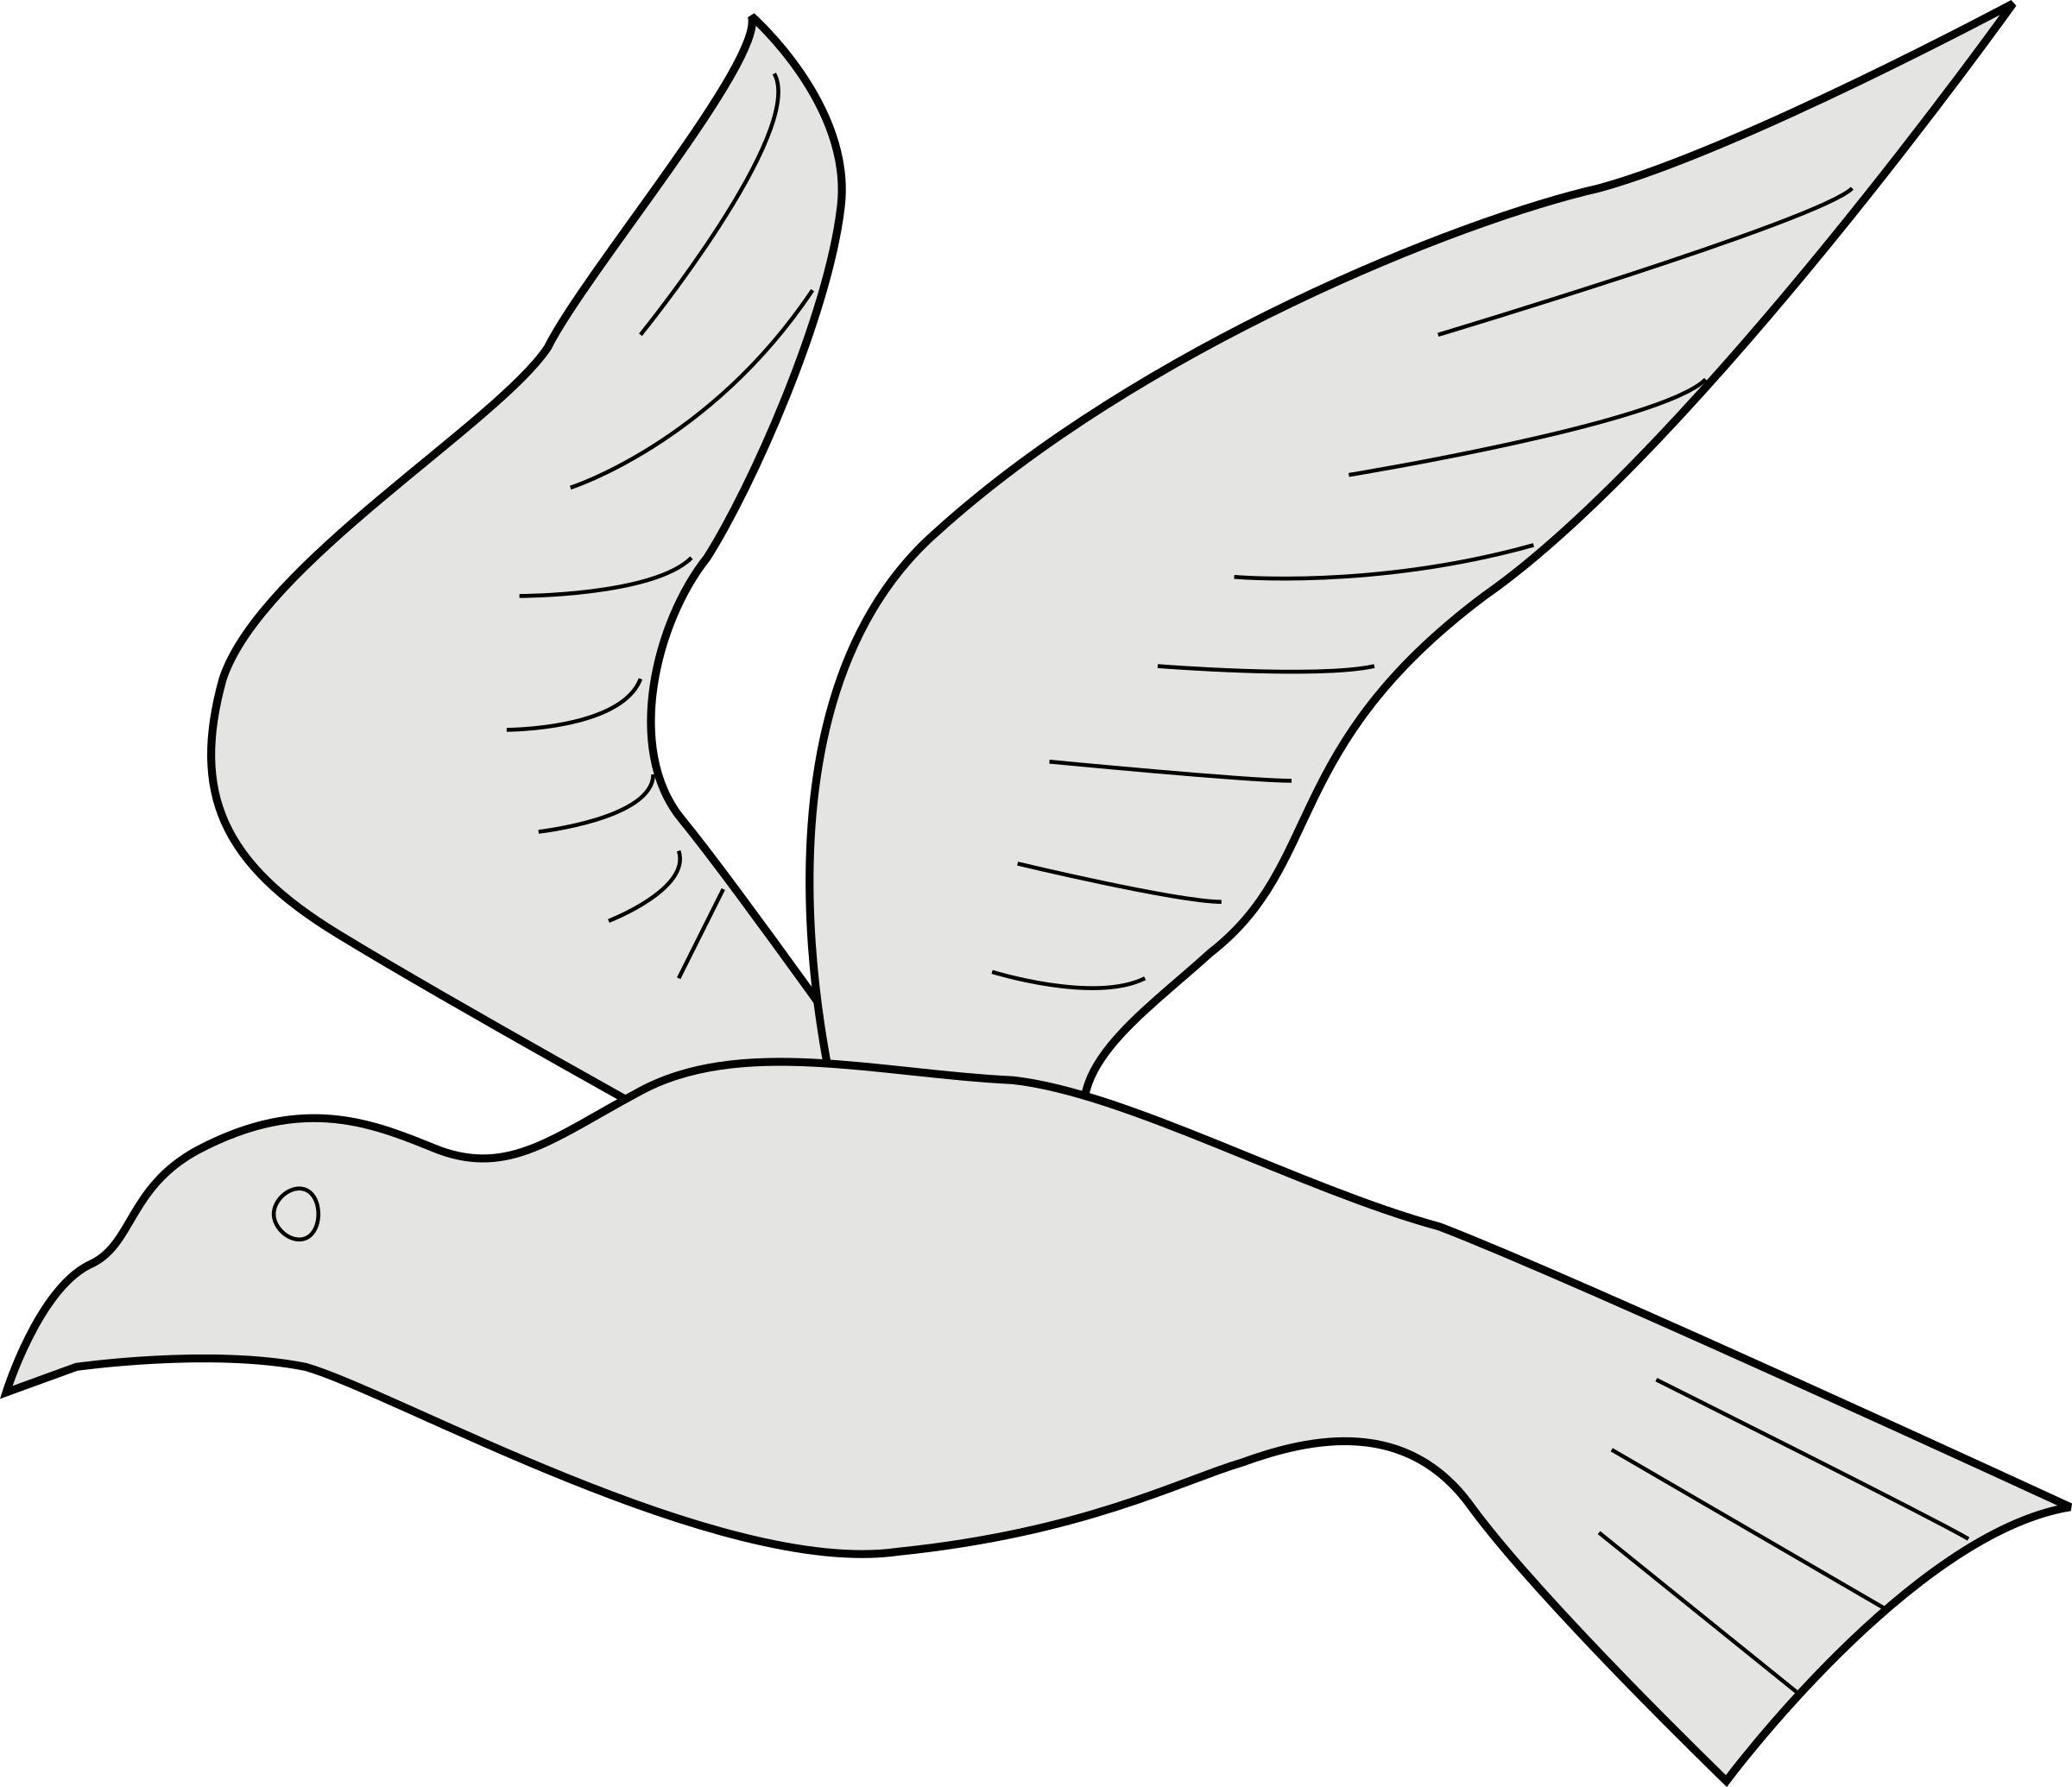 Dove 2 by Firkin